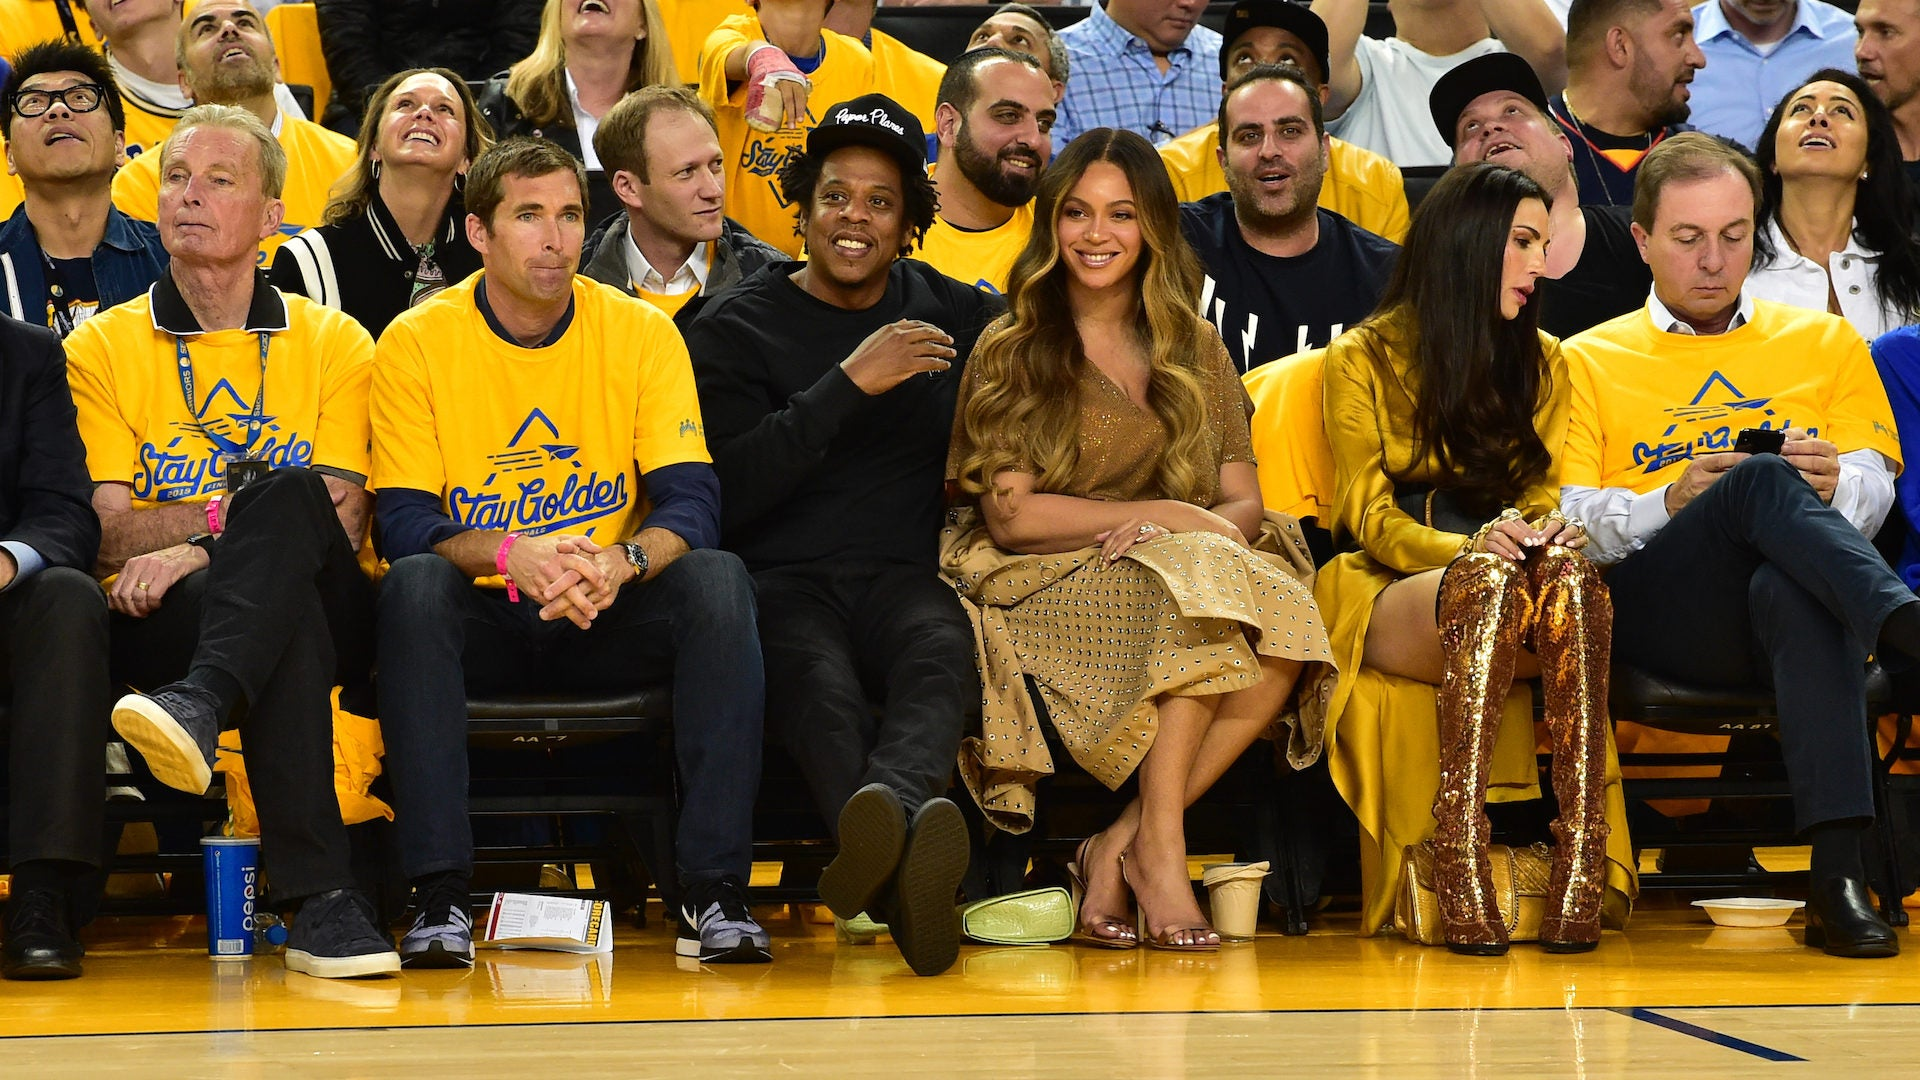 Best Photos Of Beyonce And Jay Z Courtside At Nba Games Over The